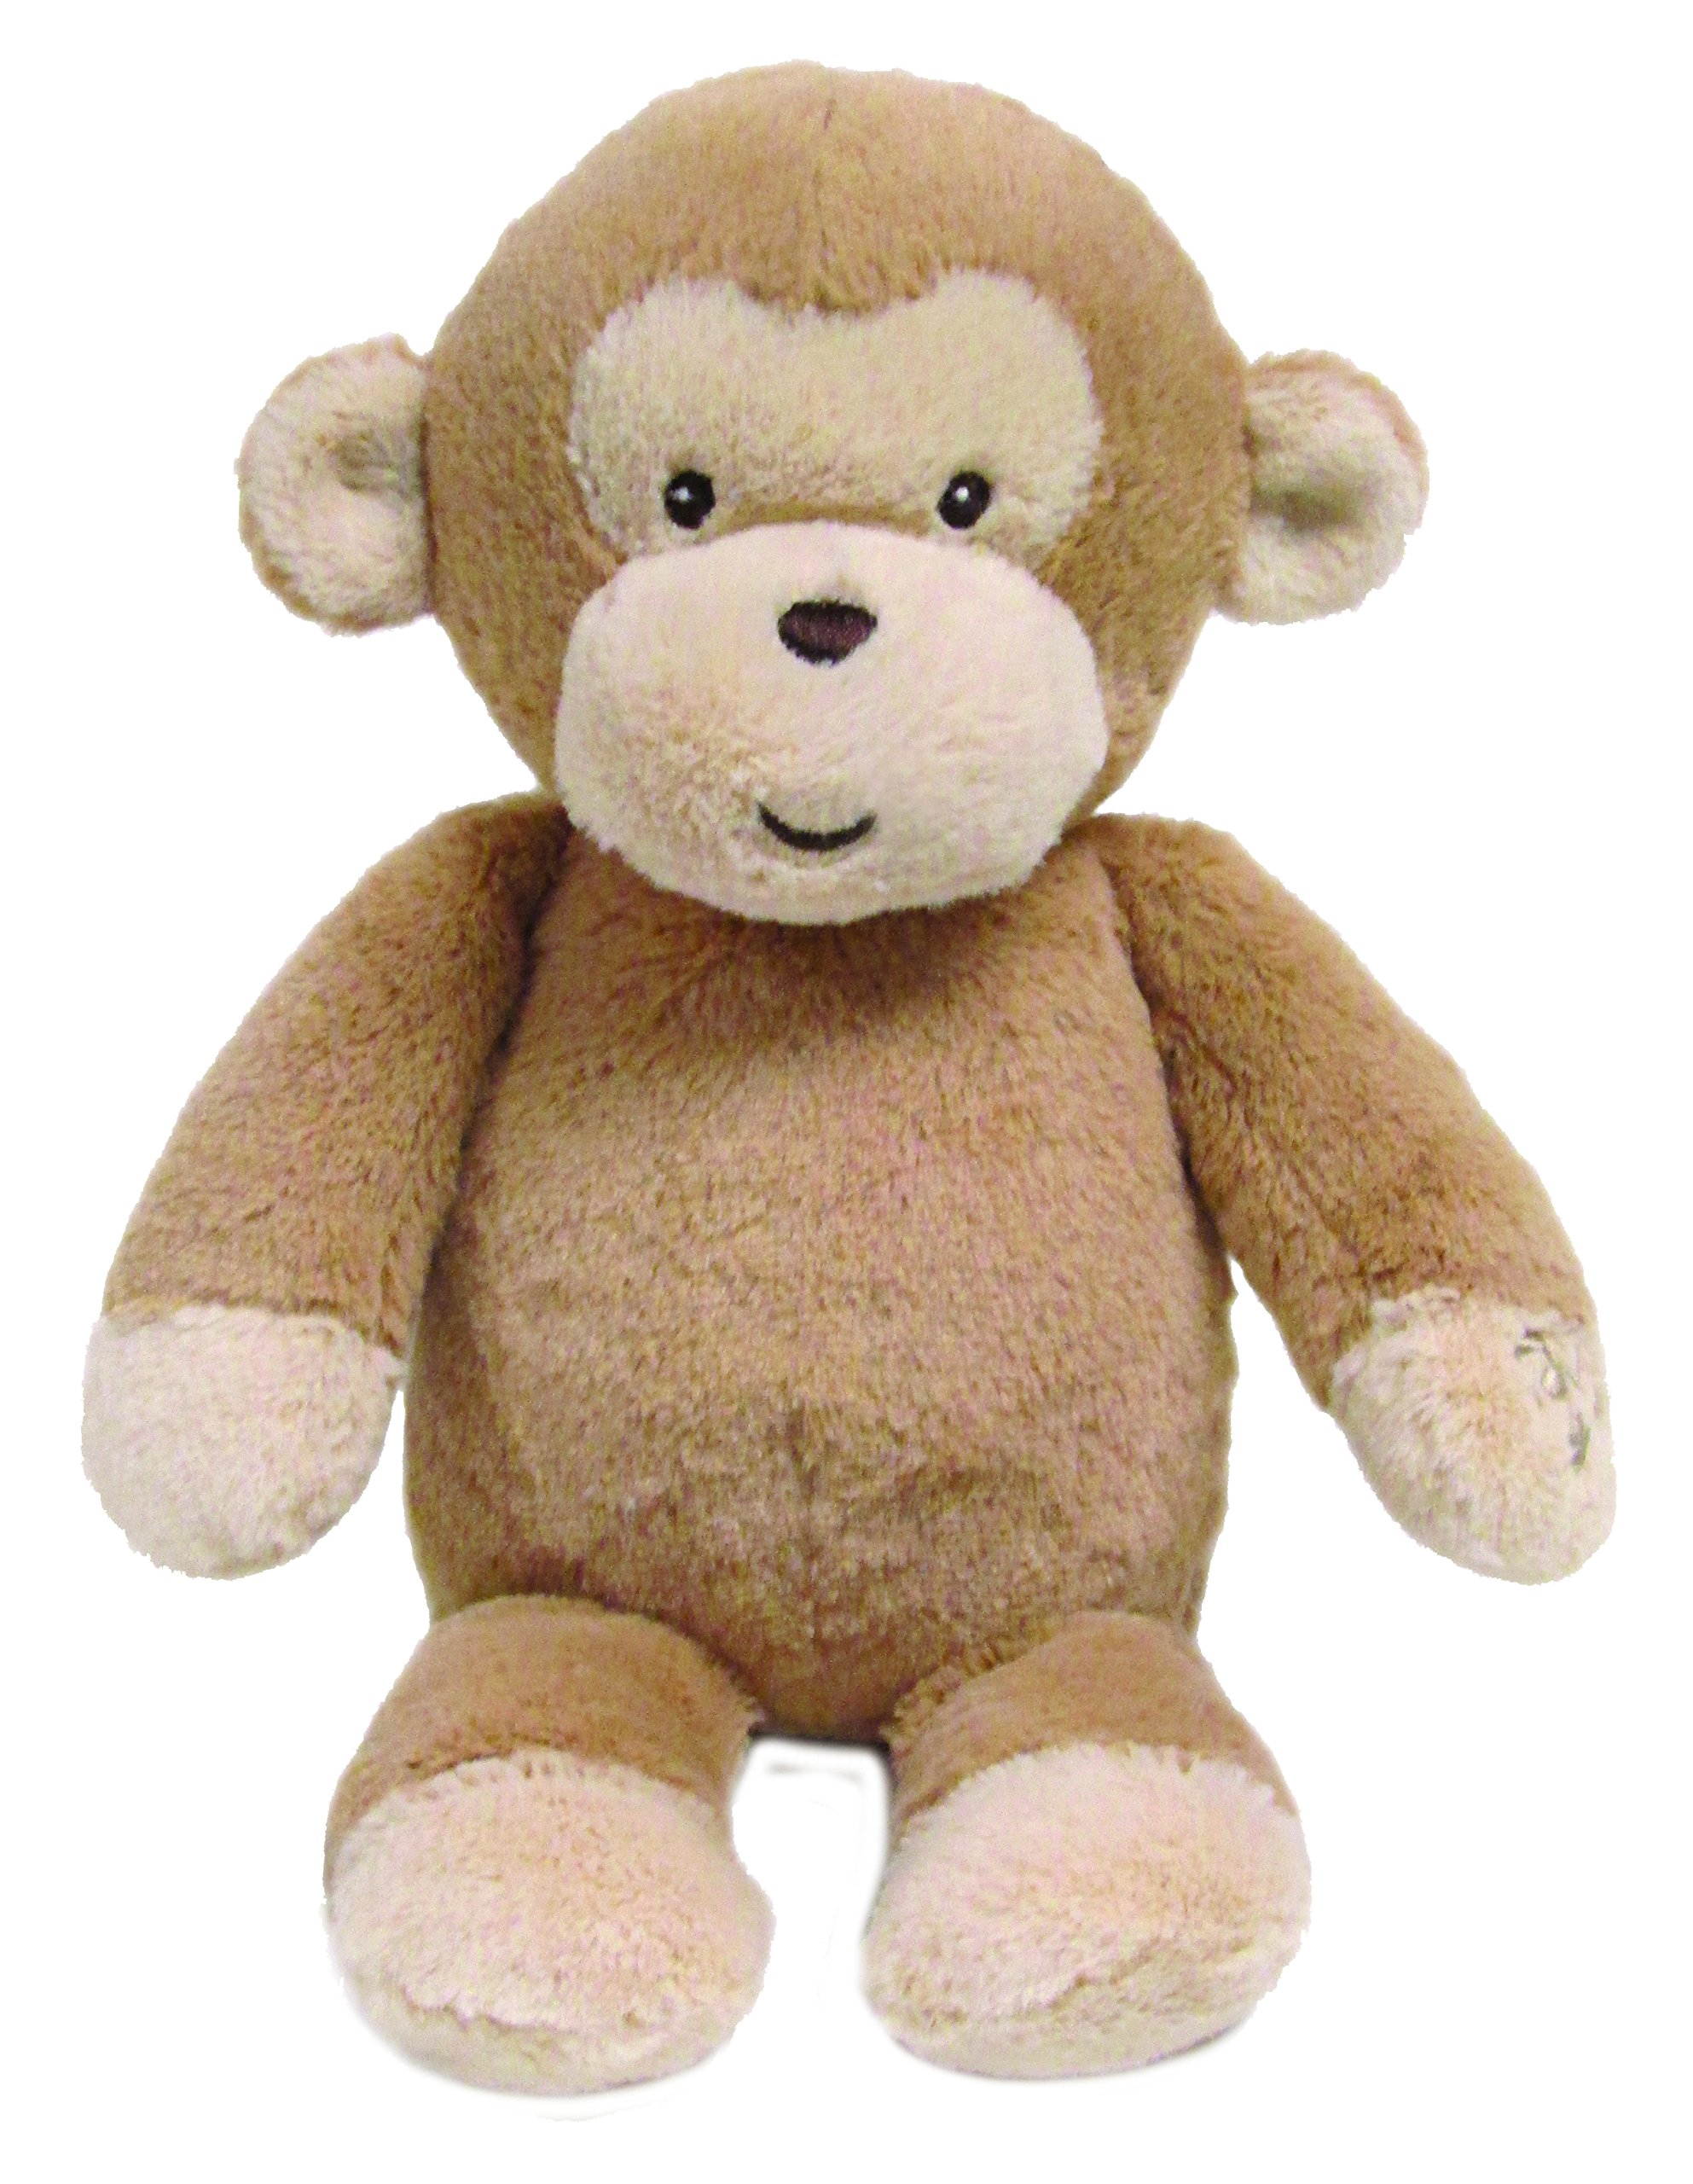 Carter's Musical Plush Monkey Soother, 12''